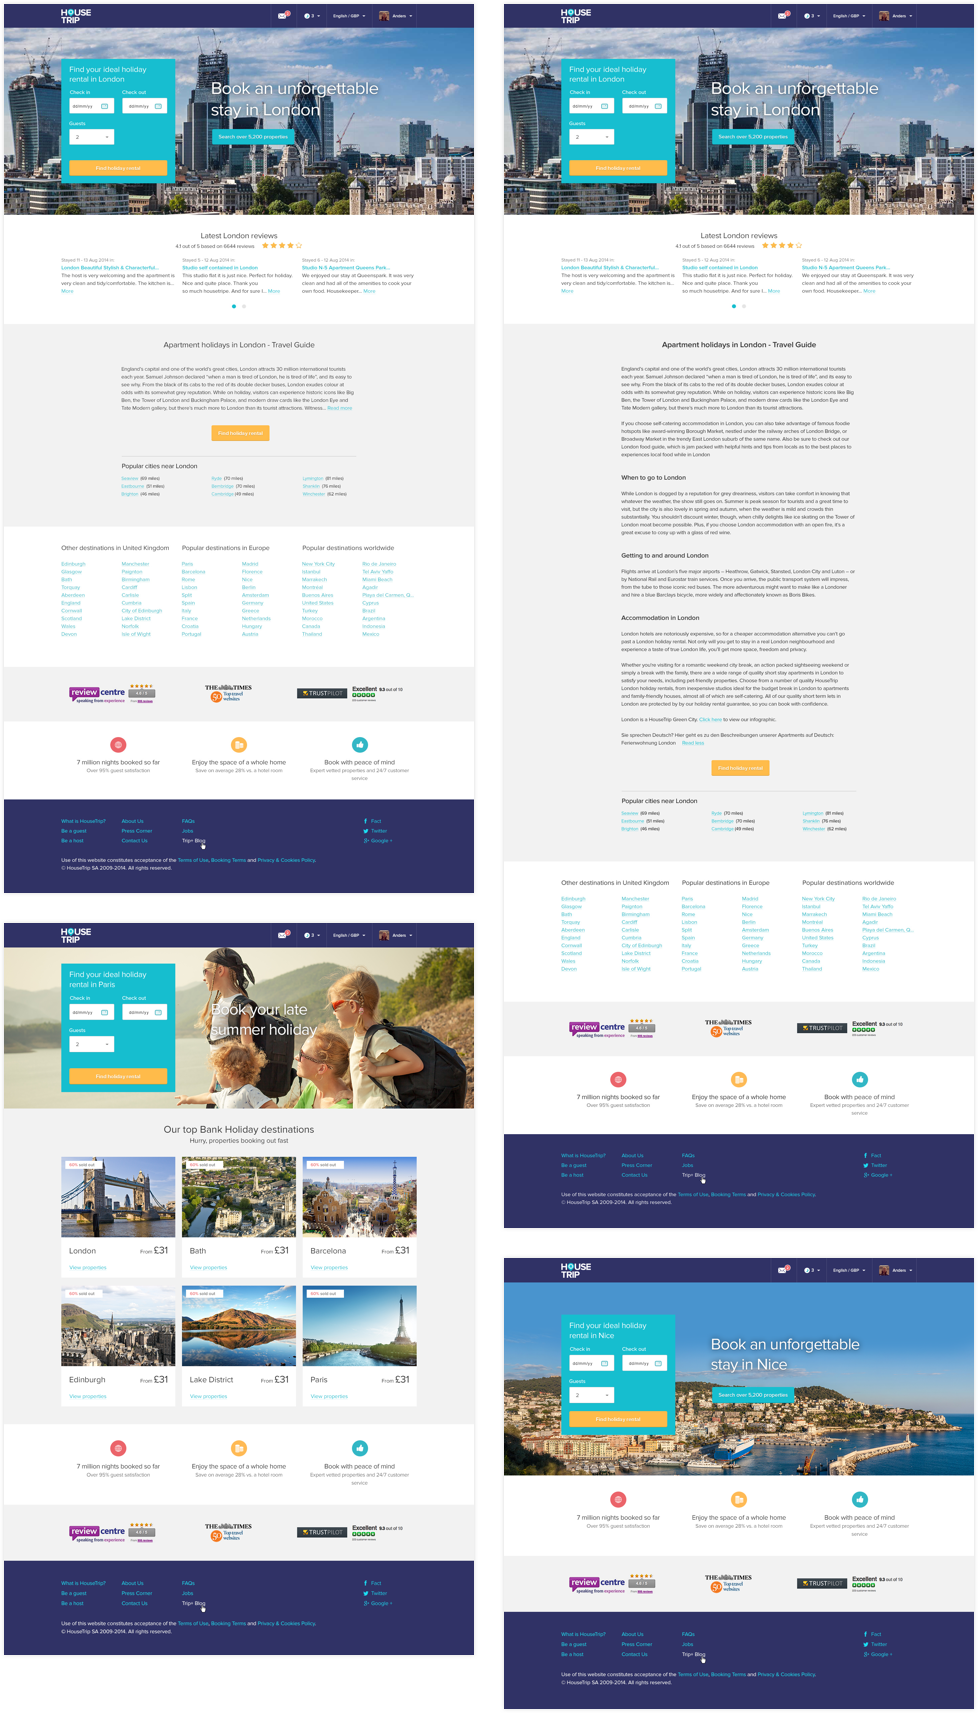 HouseTrip Landing pages